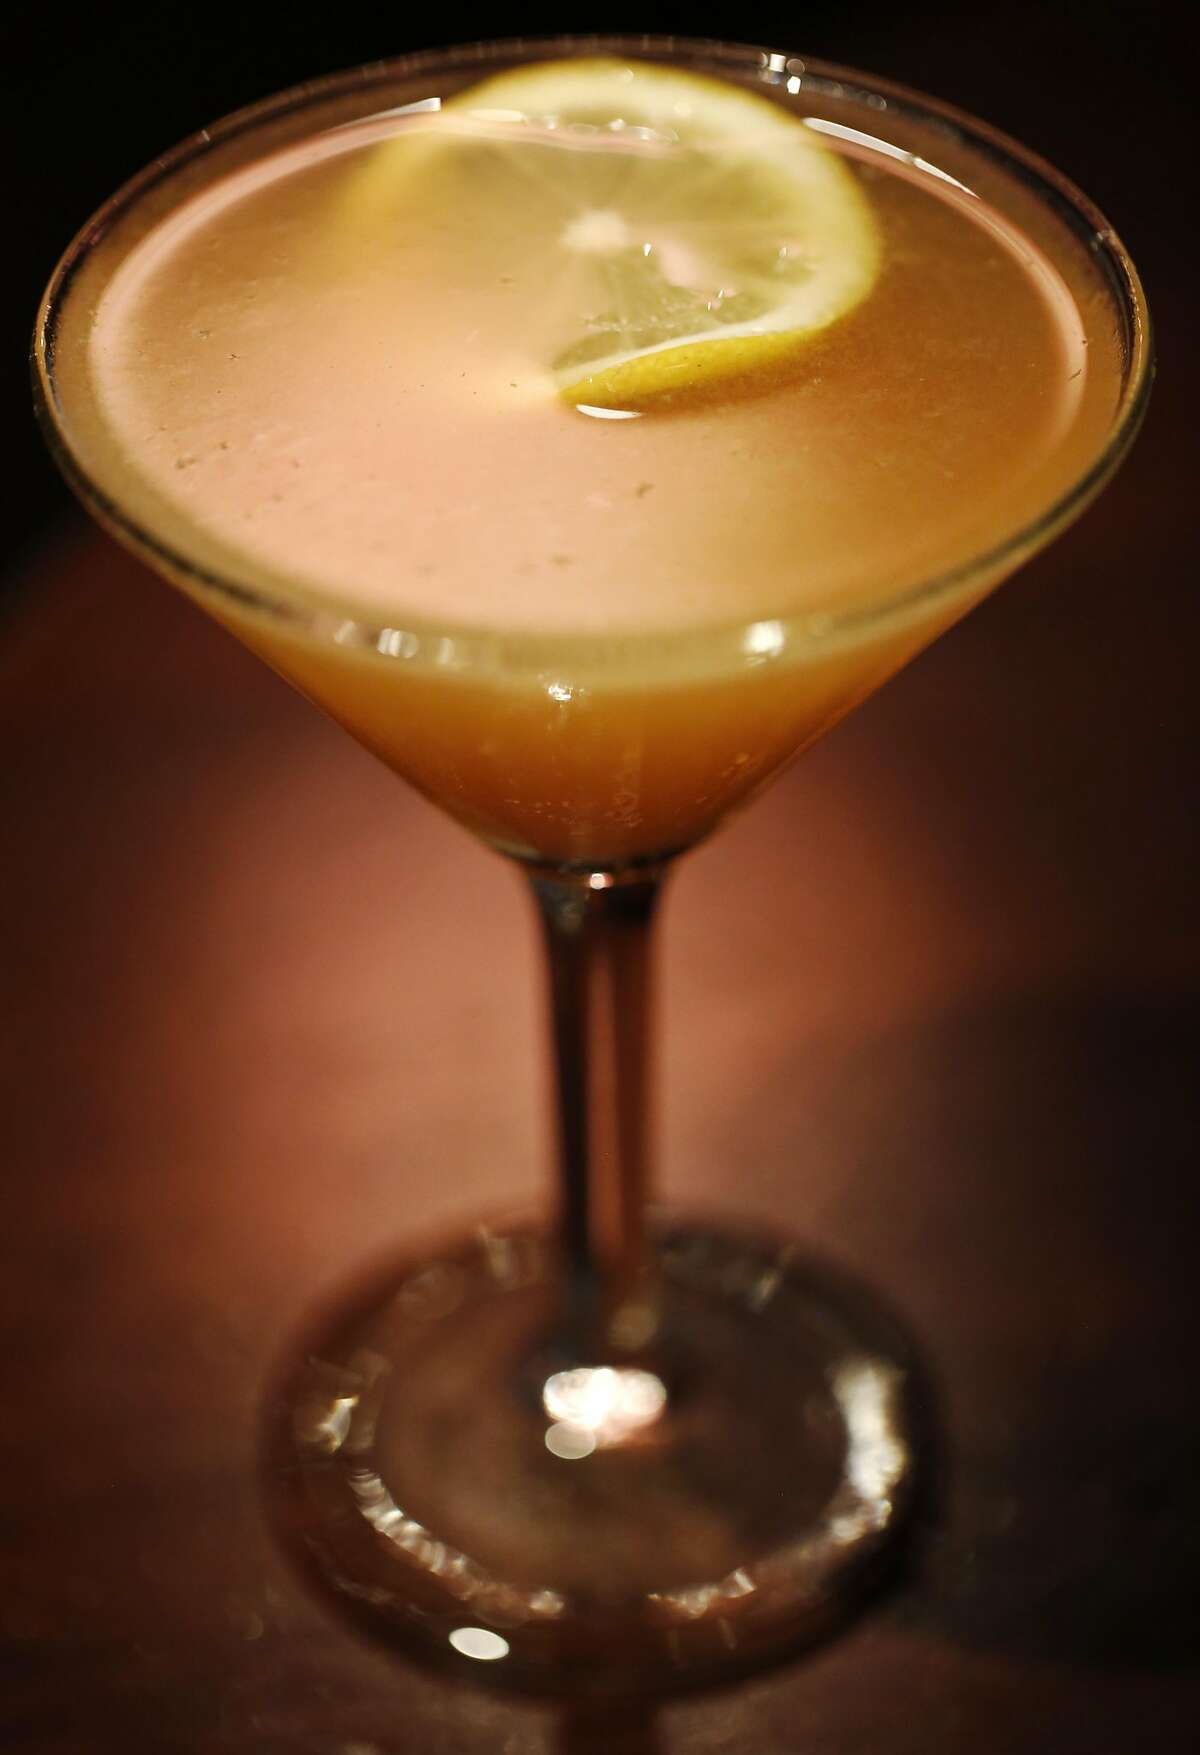 Deco Lounge Sidecar pictured at Ginger's in the Financial District August 5, 2017 in San Francisco, Calif.